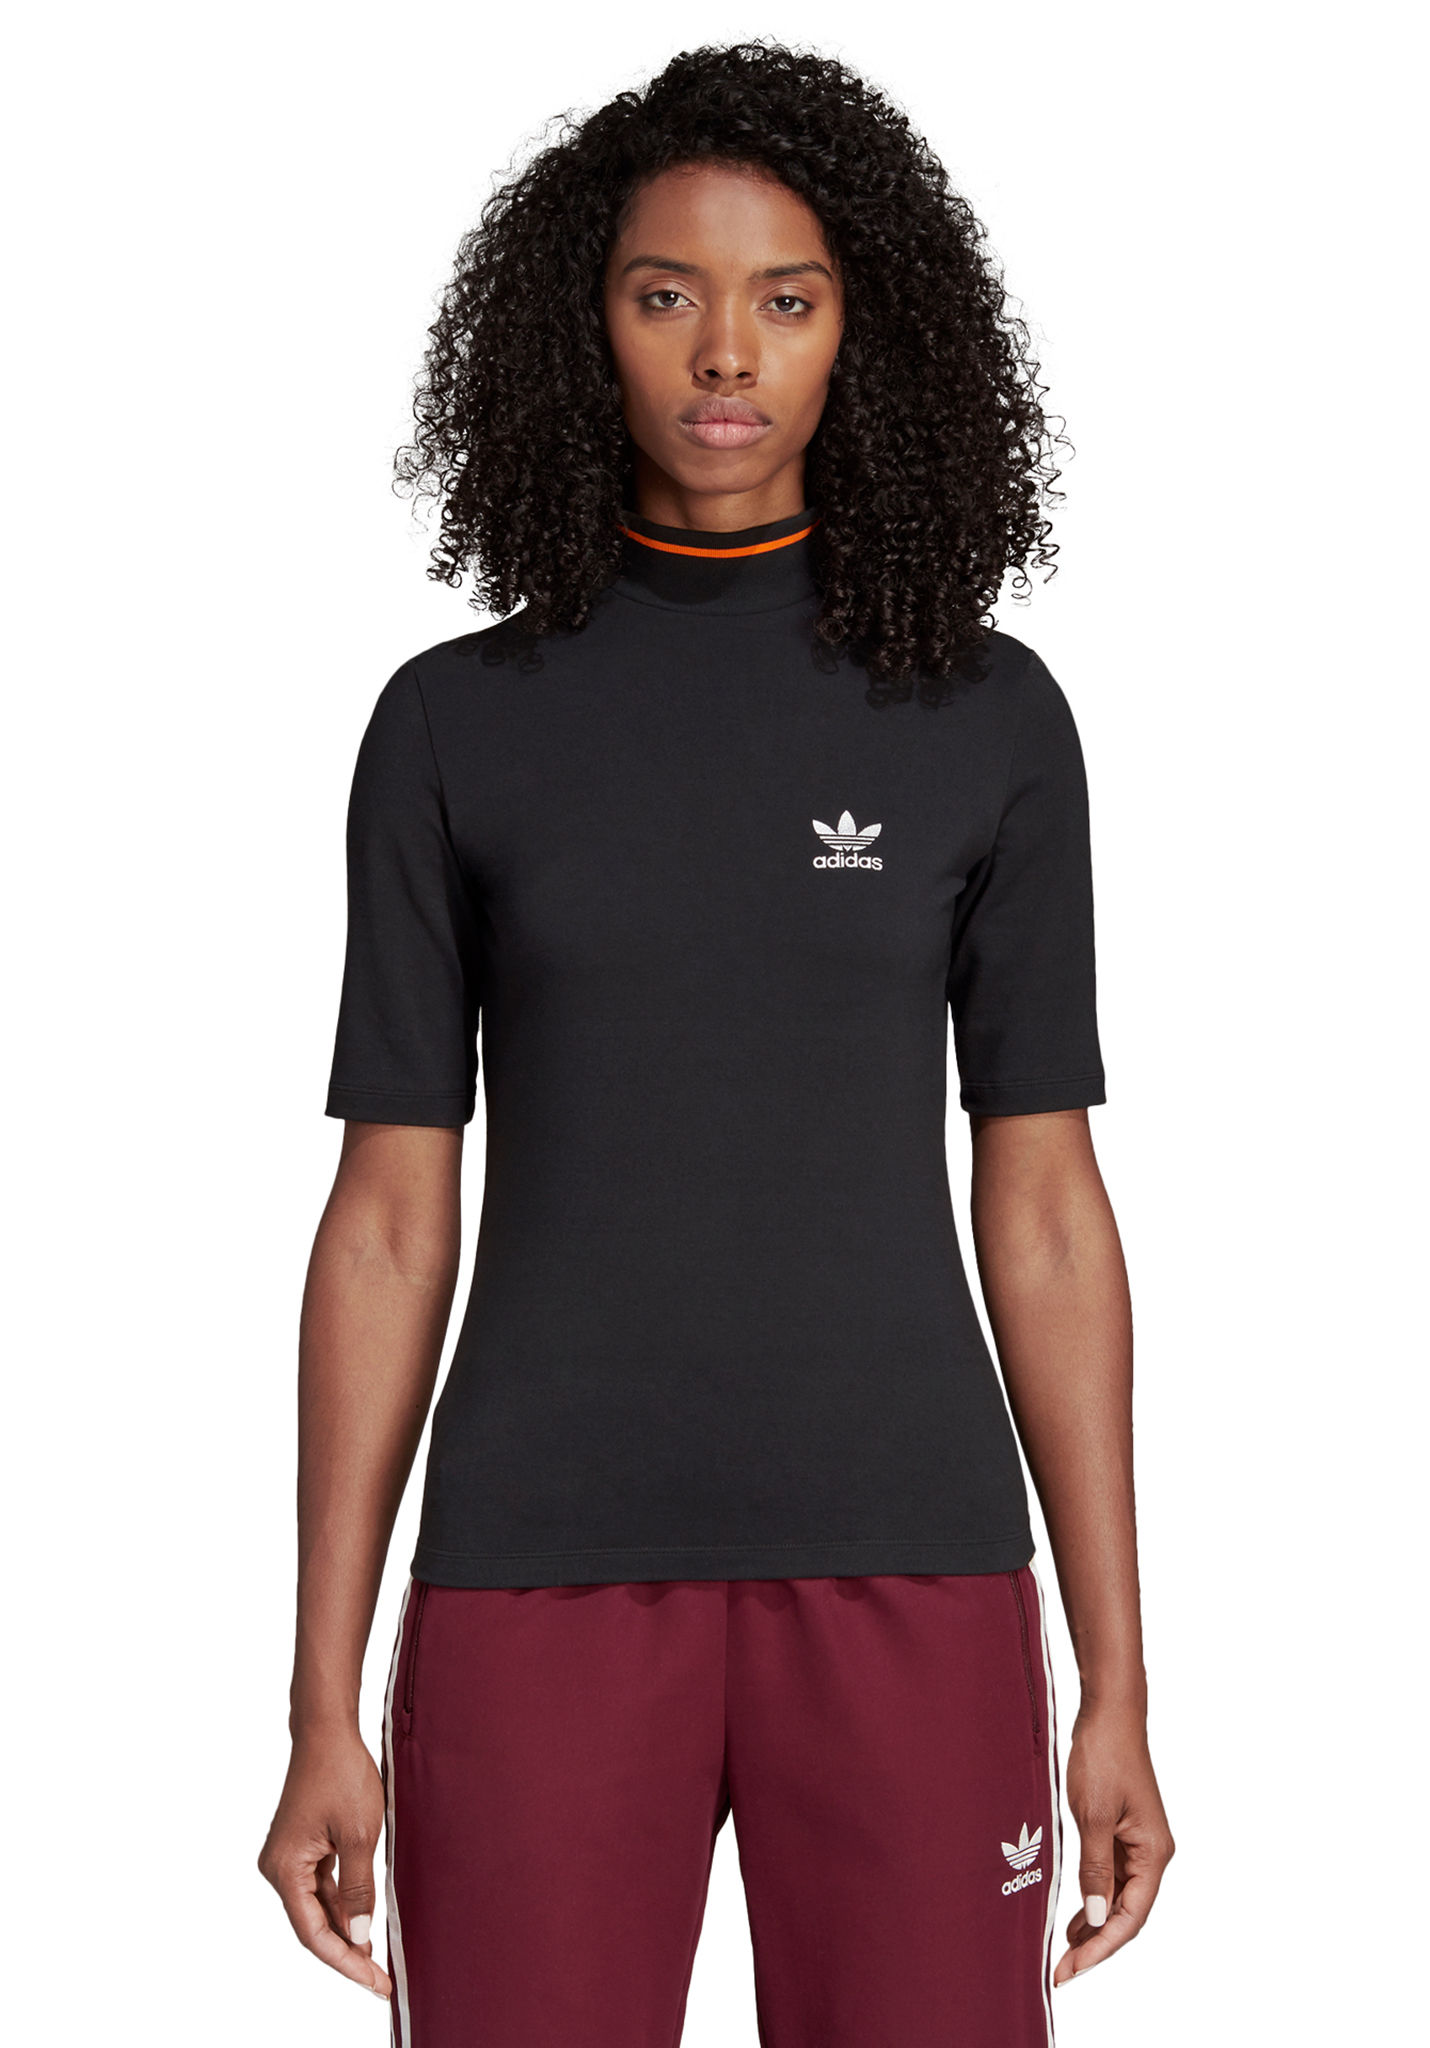 f46d0cbe3f7 ADIDAS ORIGINALS Colorado - T-shirt voor Dames - Zwart - Planet Sports